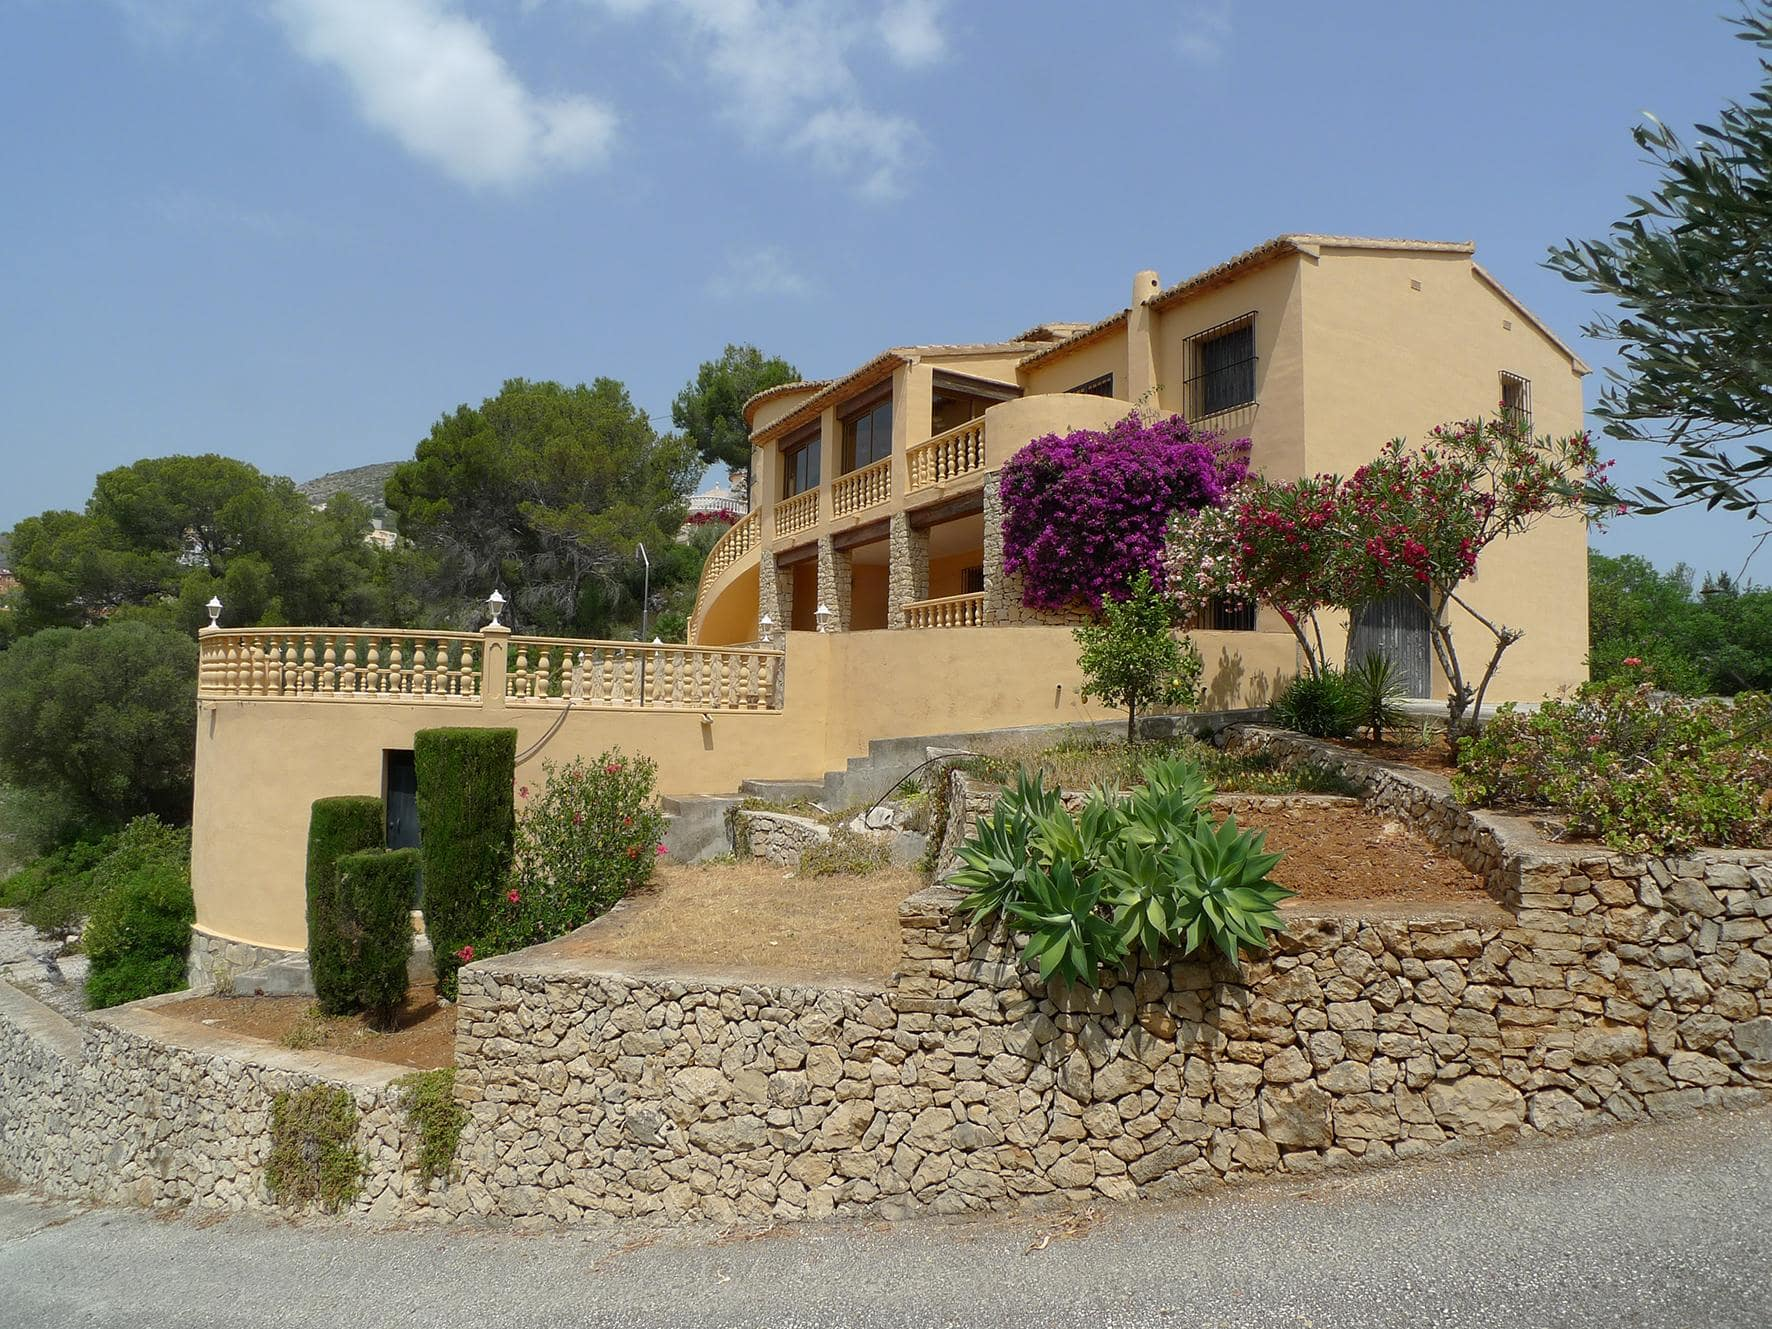 3 Bedroom Villa in Jalon